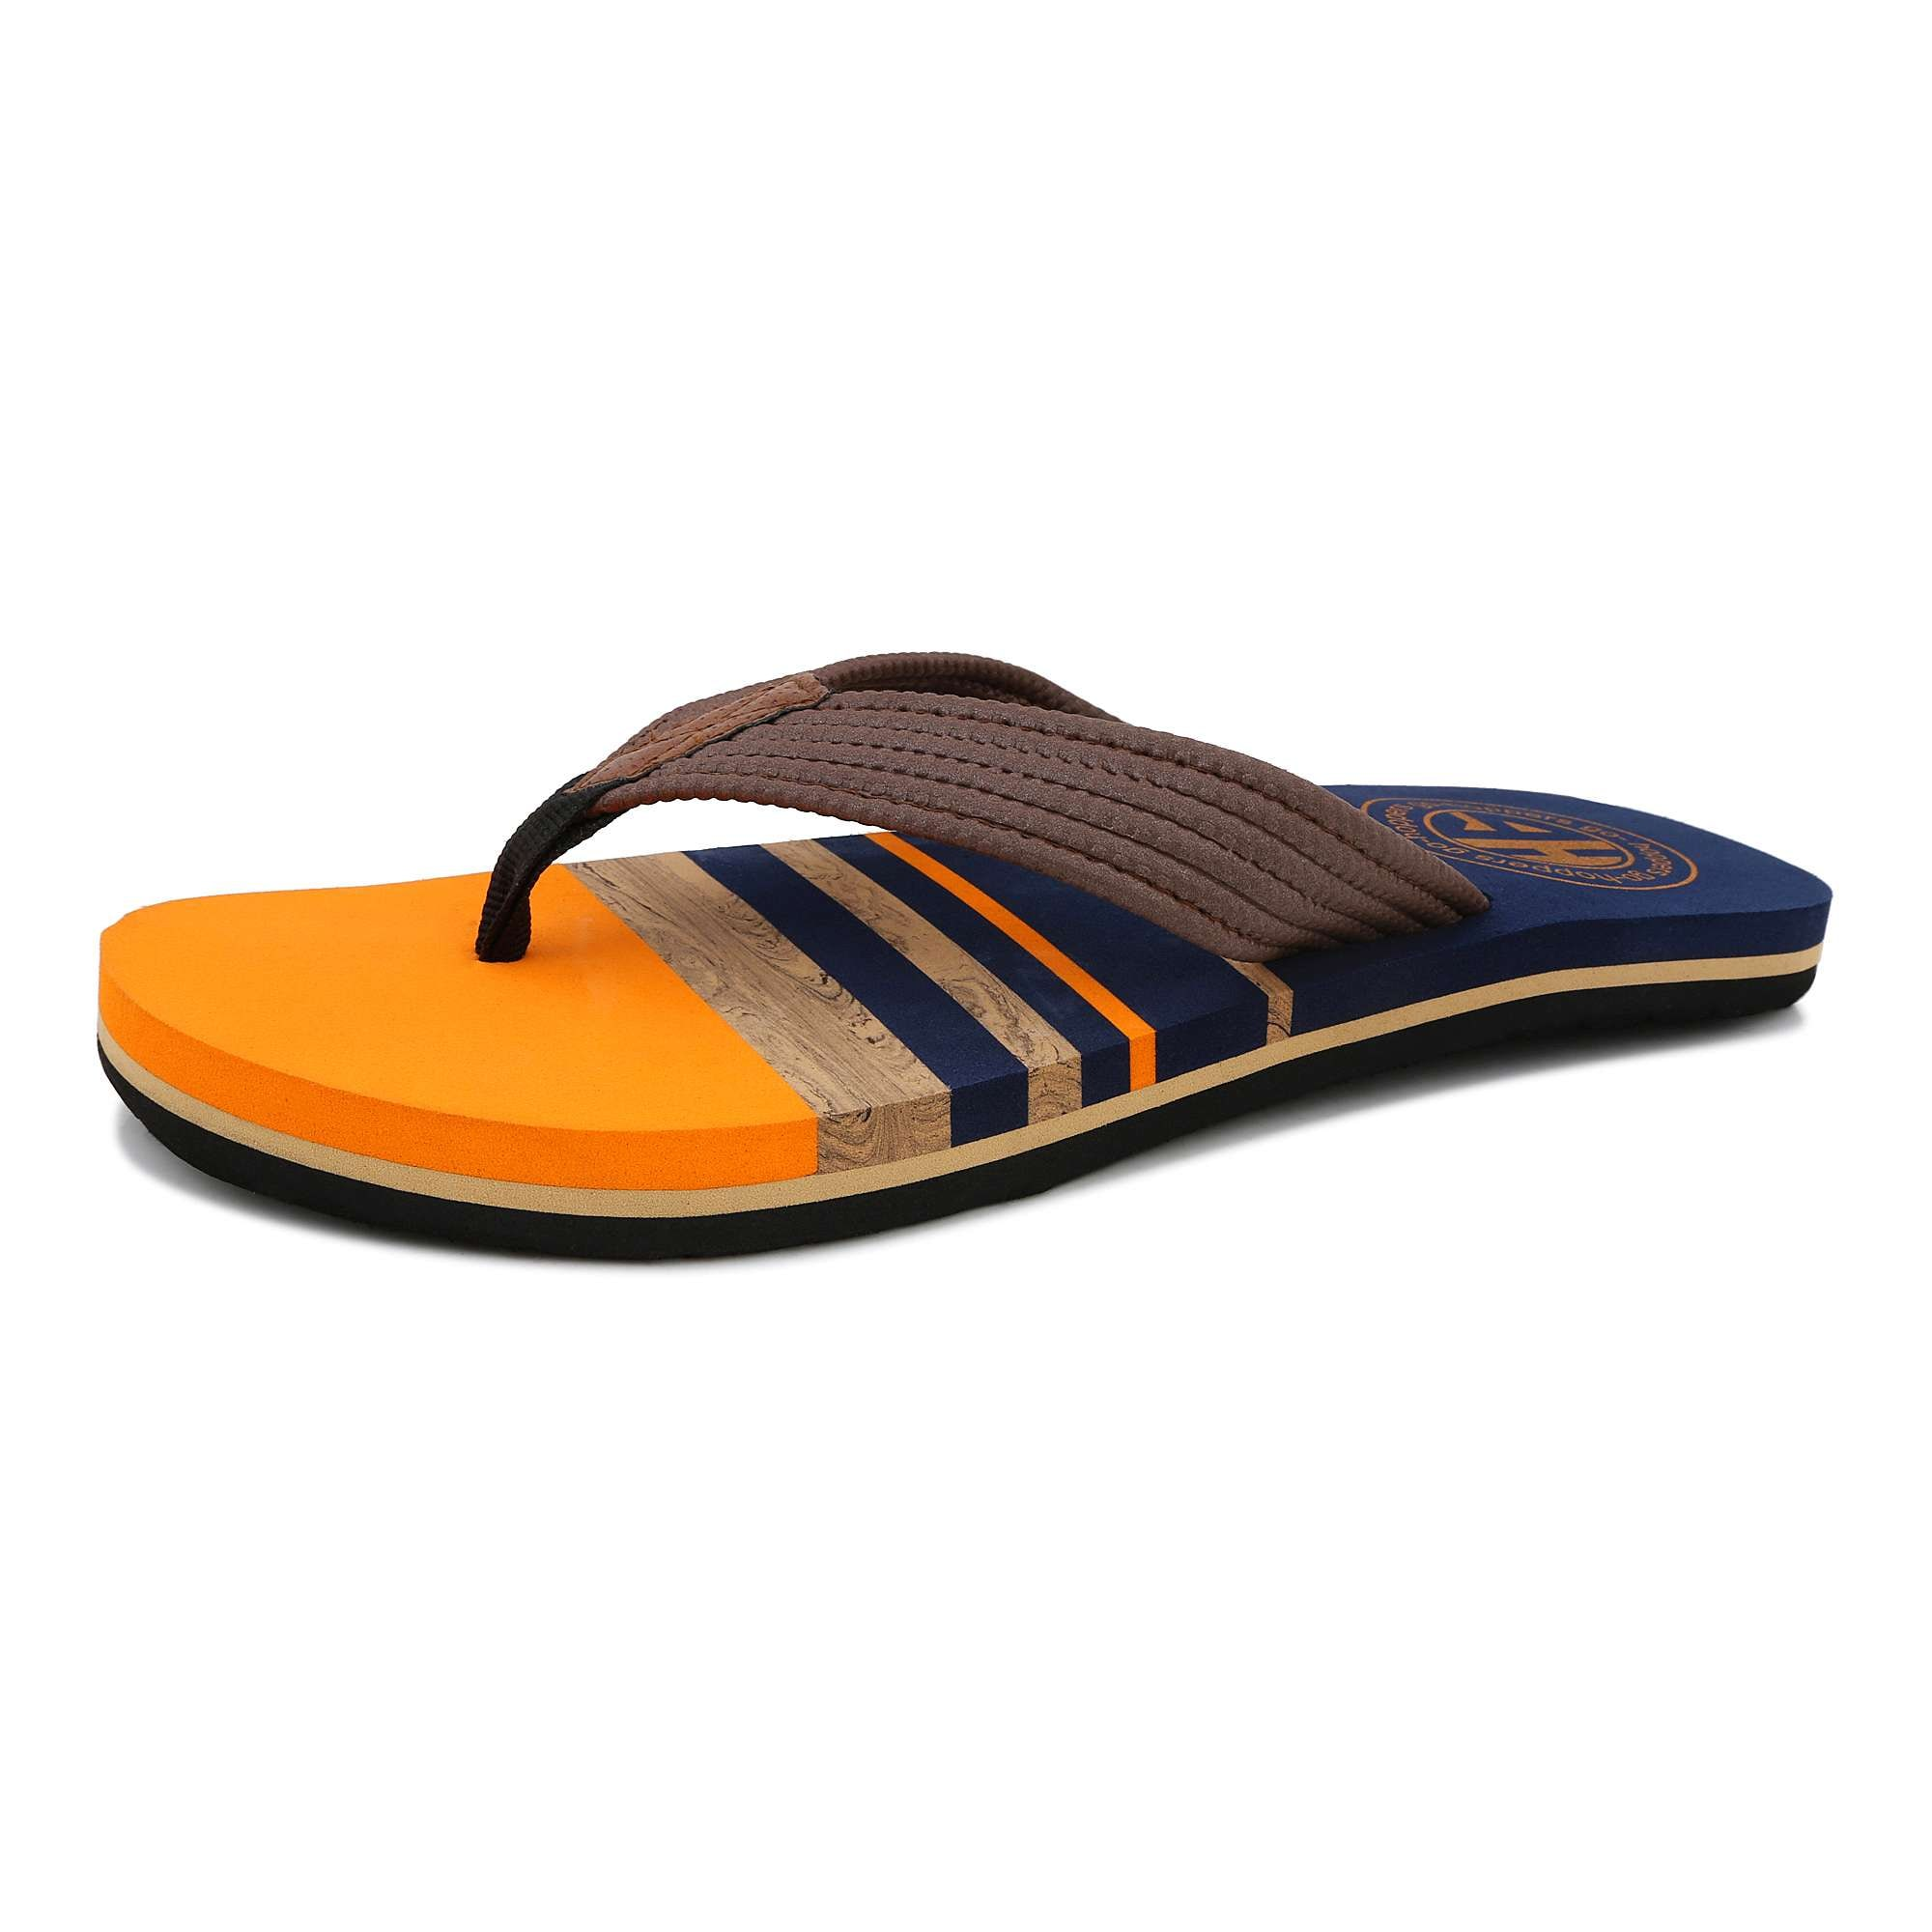 947fdb436 Buy Hoppers Go Men s Striped Thong- Style Flip- Flops